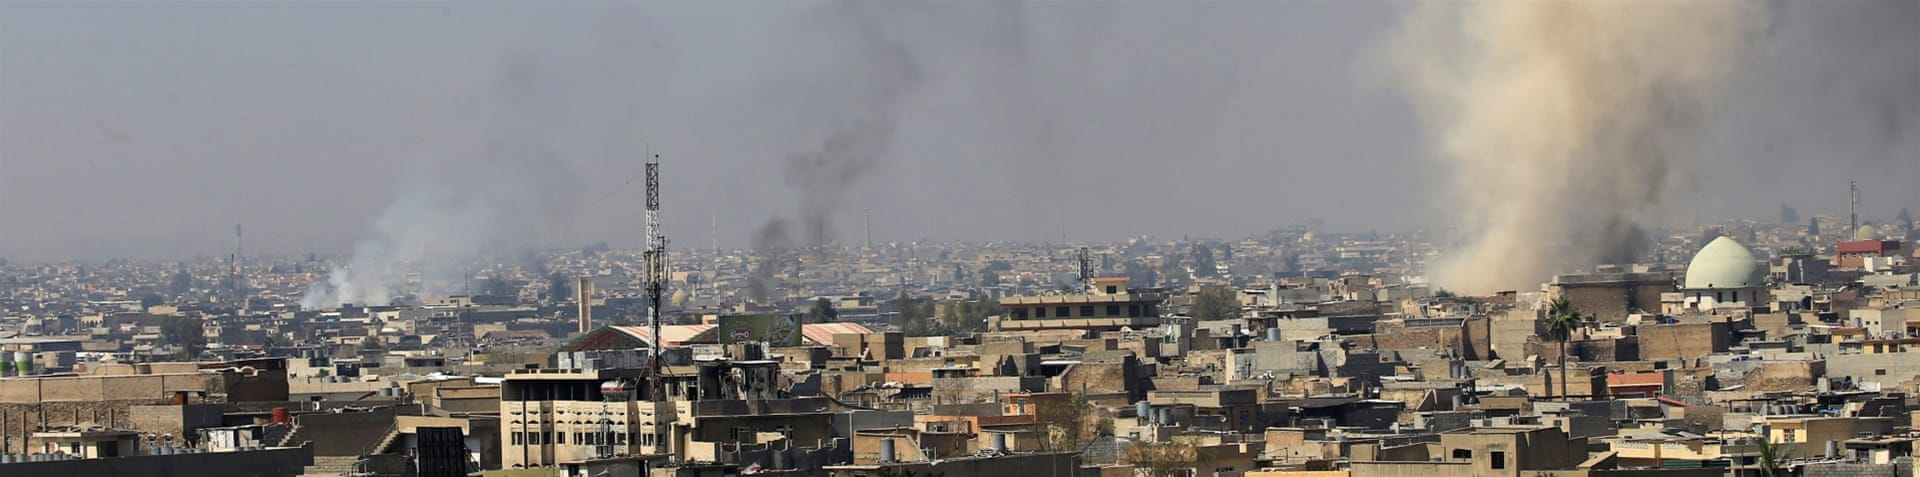 Thousands of civilians in Mosul are exposed to the intense fighting [Khalid Mohammed/AP]